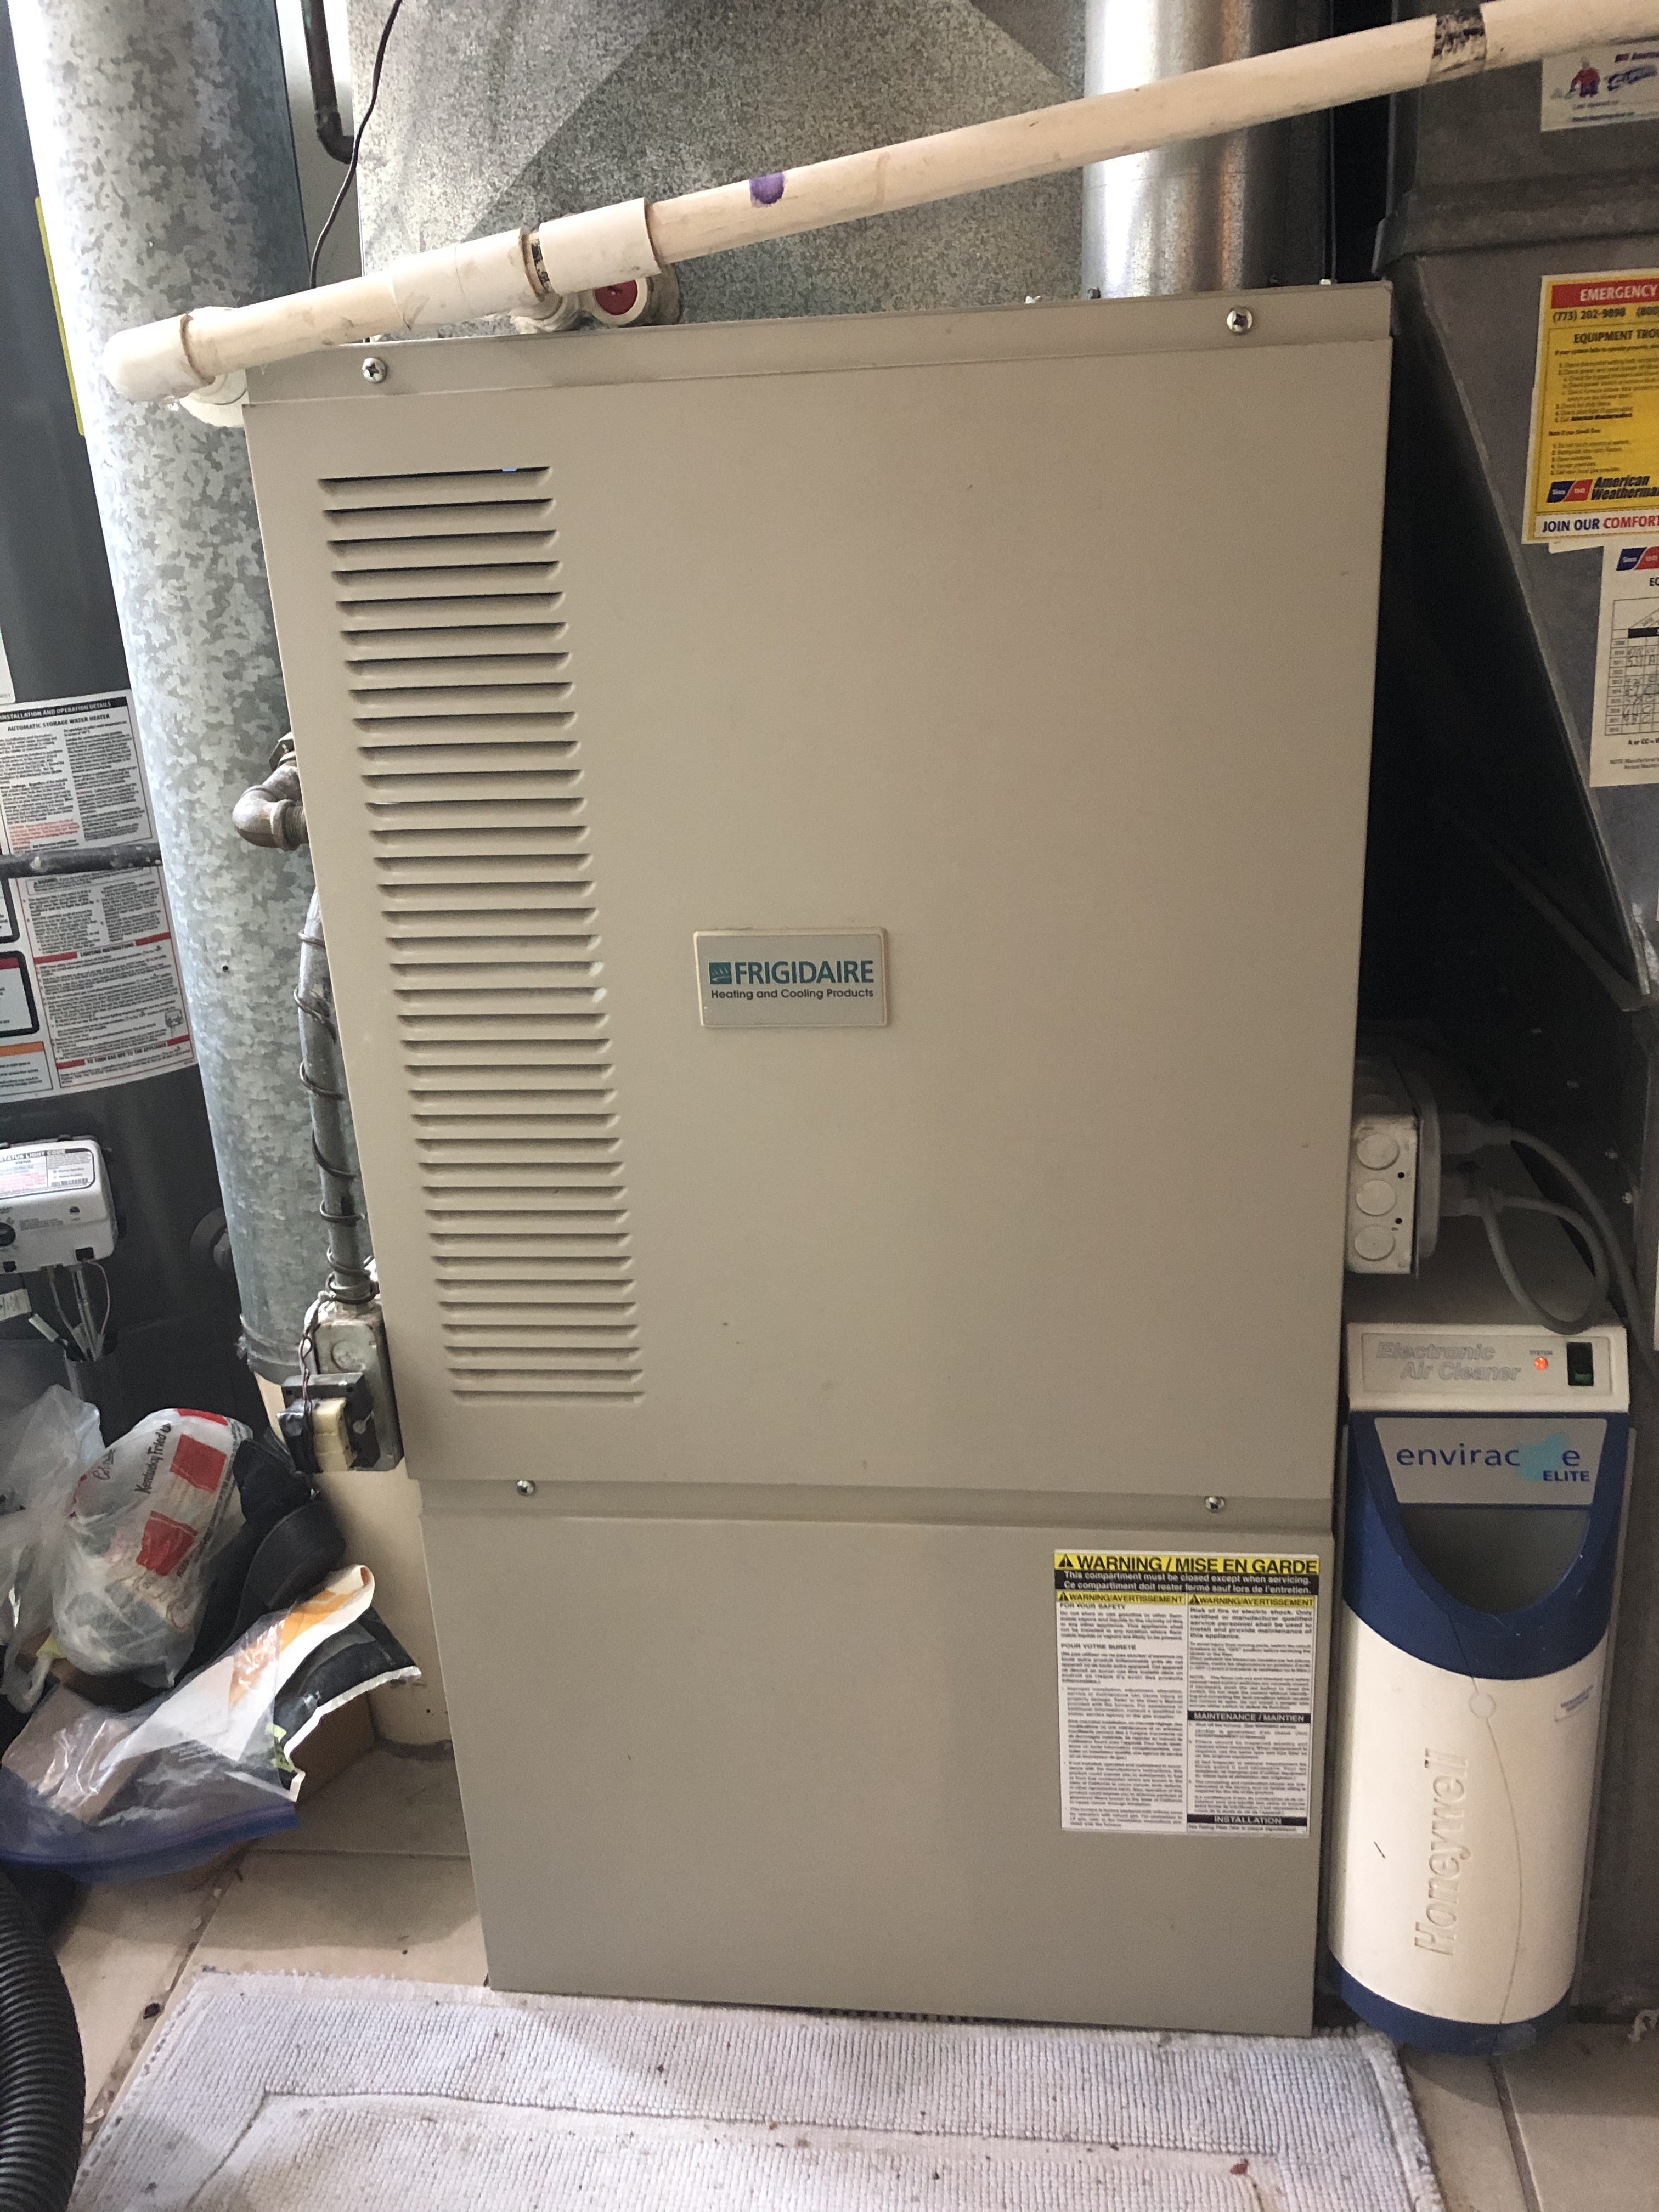 Make sure your Frigidaire furnace is blowing warm air this winter. Call American Weathermakers today.